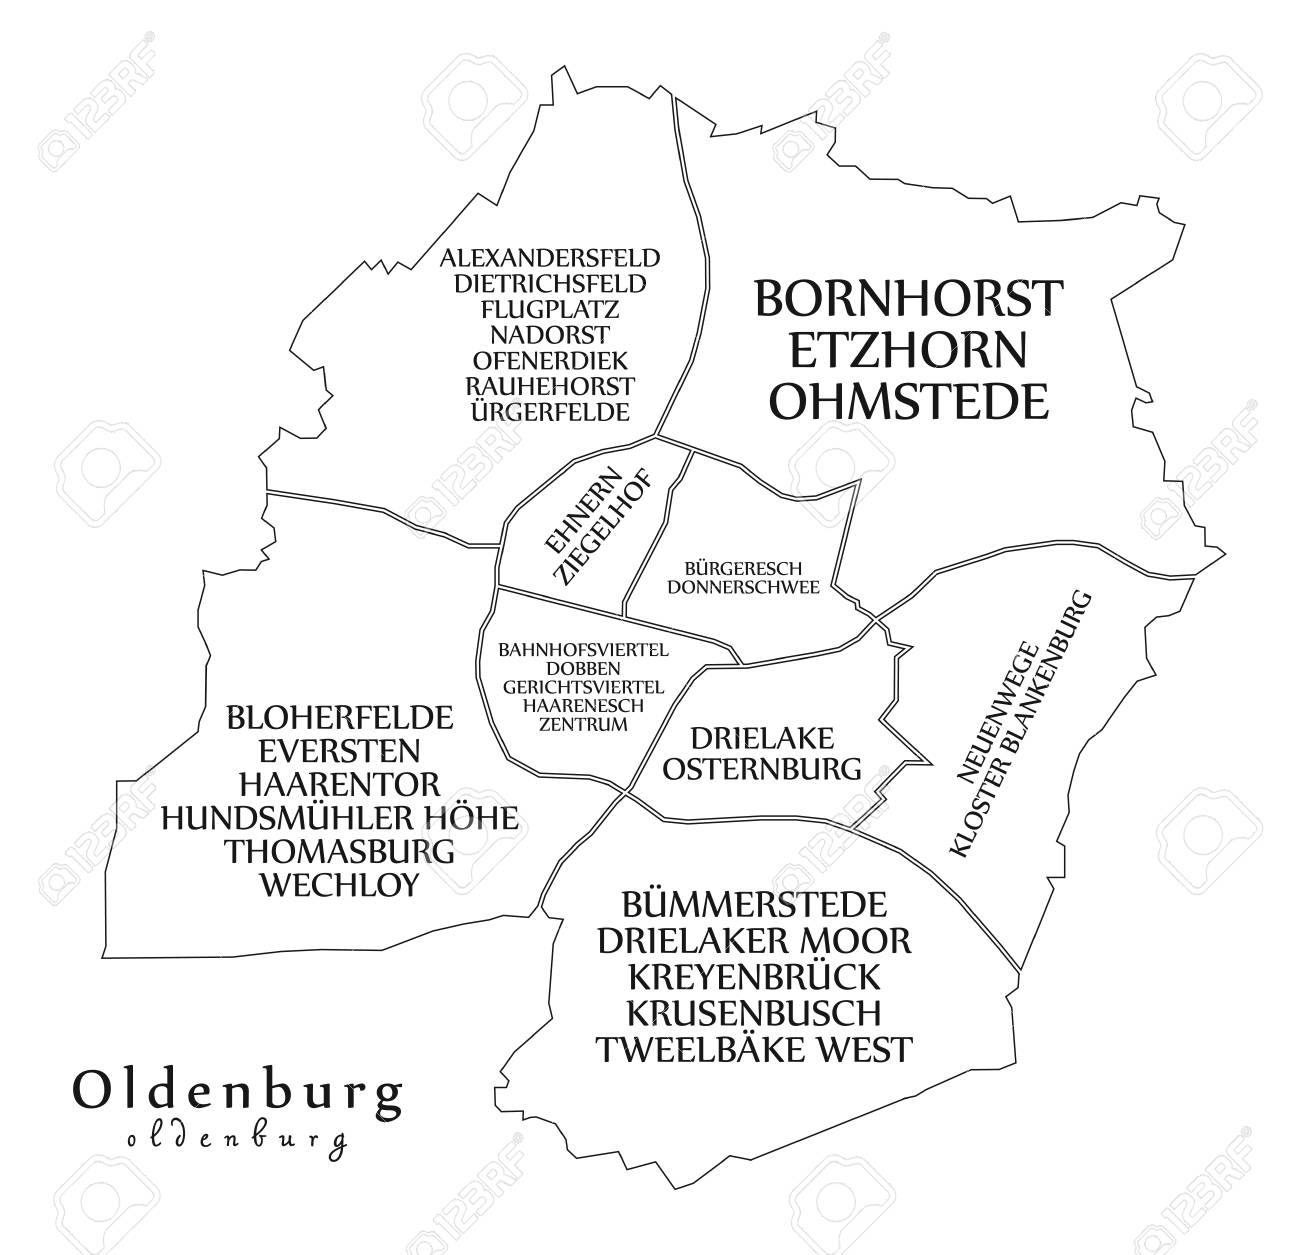 Outline Map Of Germany.Oldenburg City Of Germany With Boroughs And Titles Outline Map